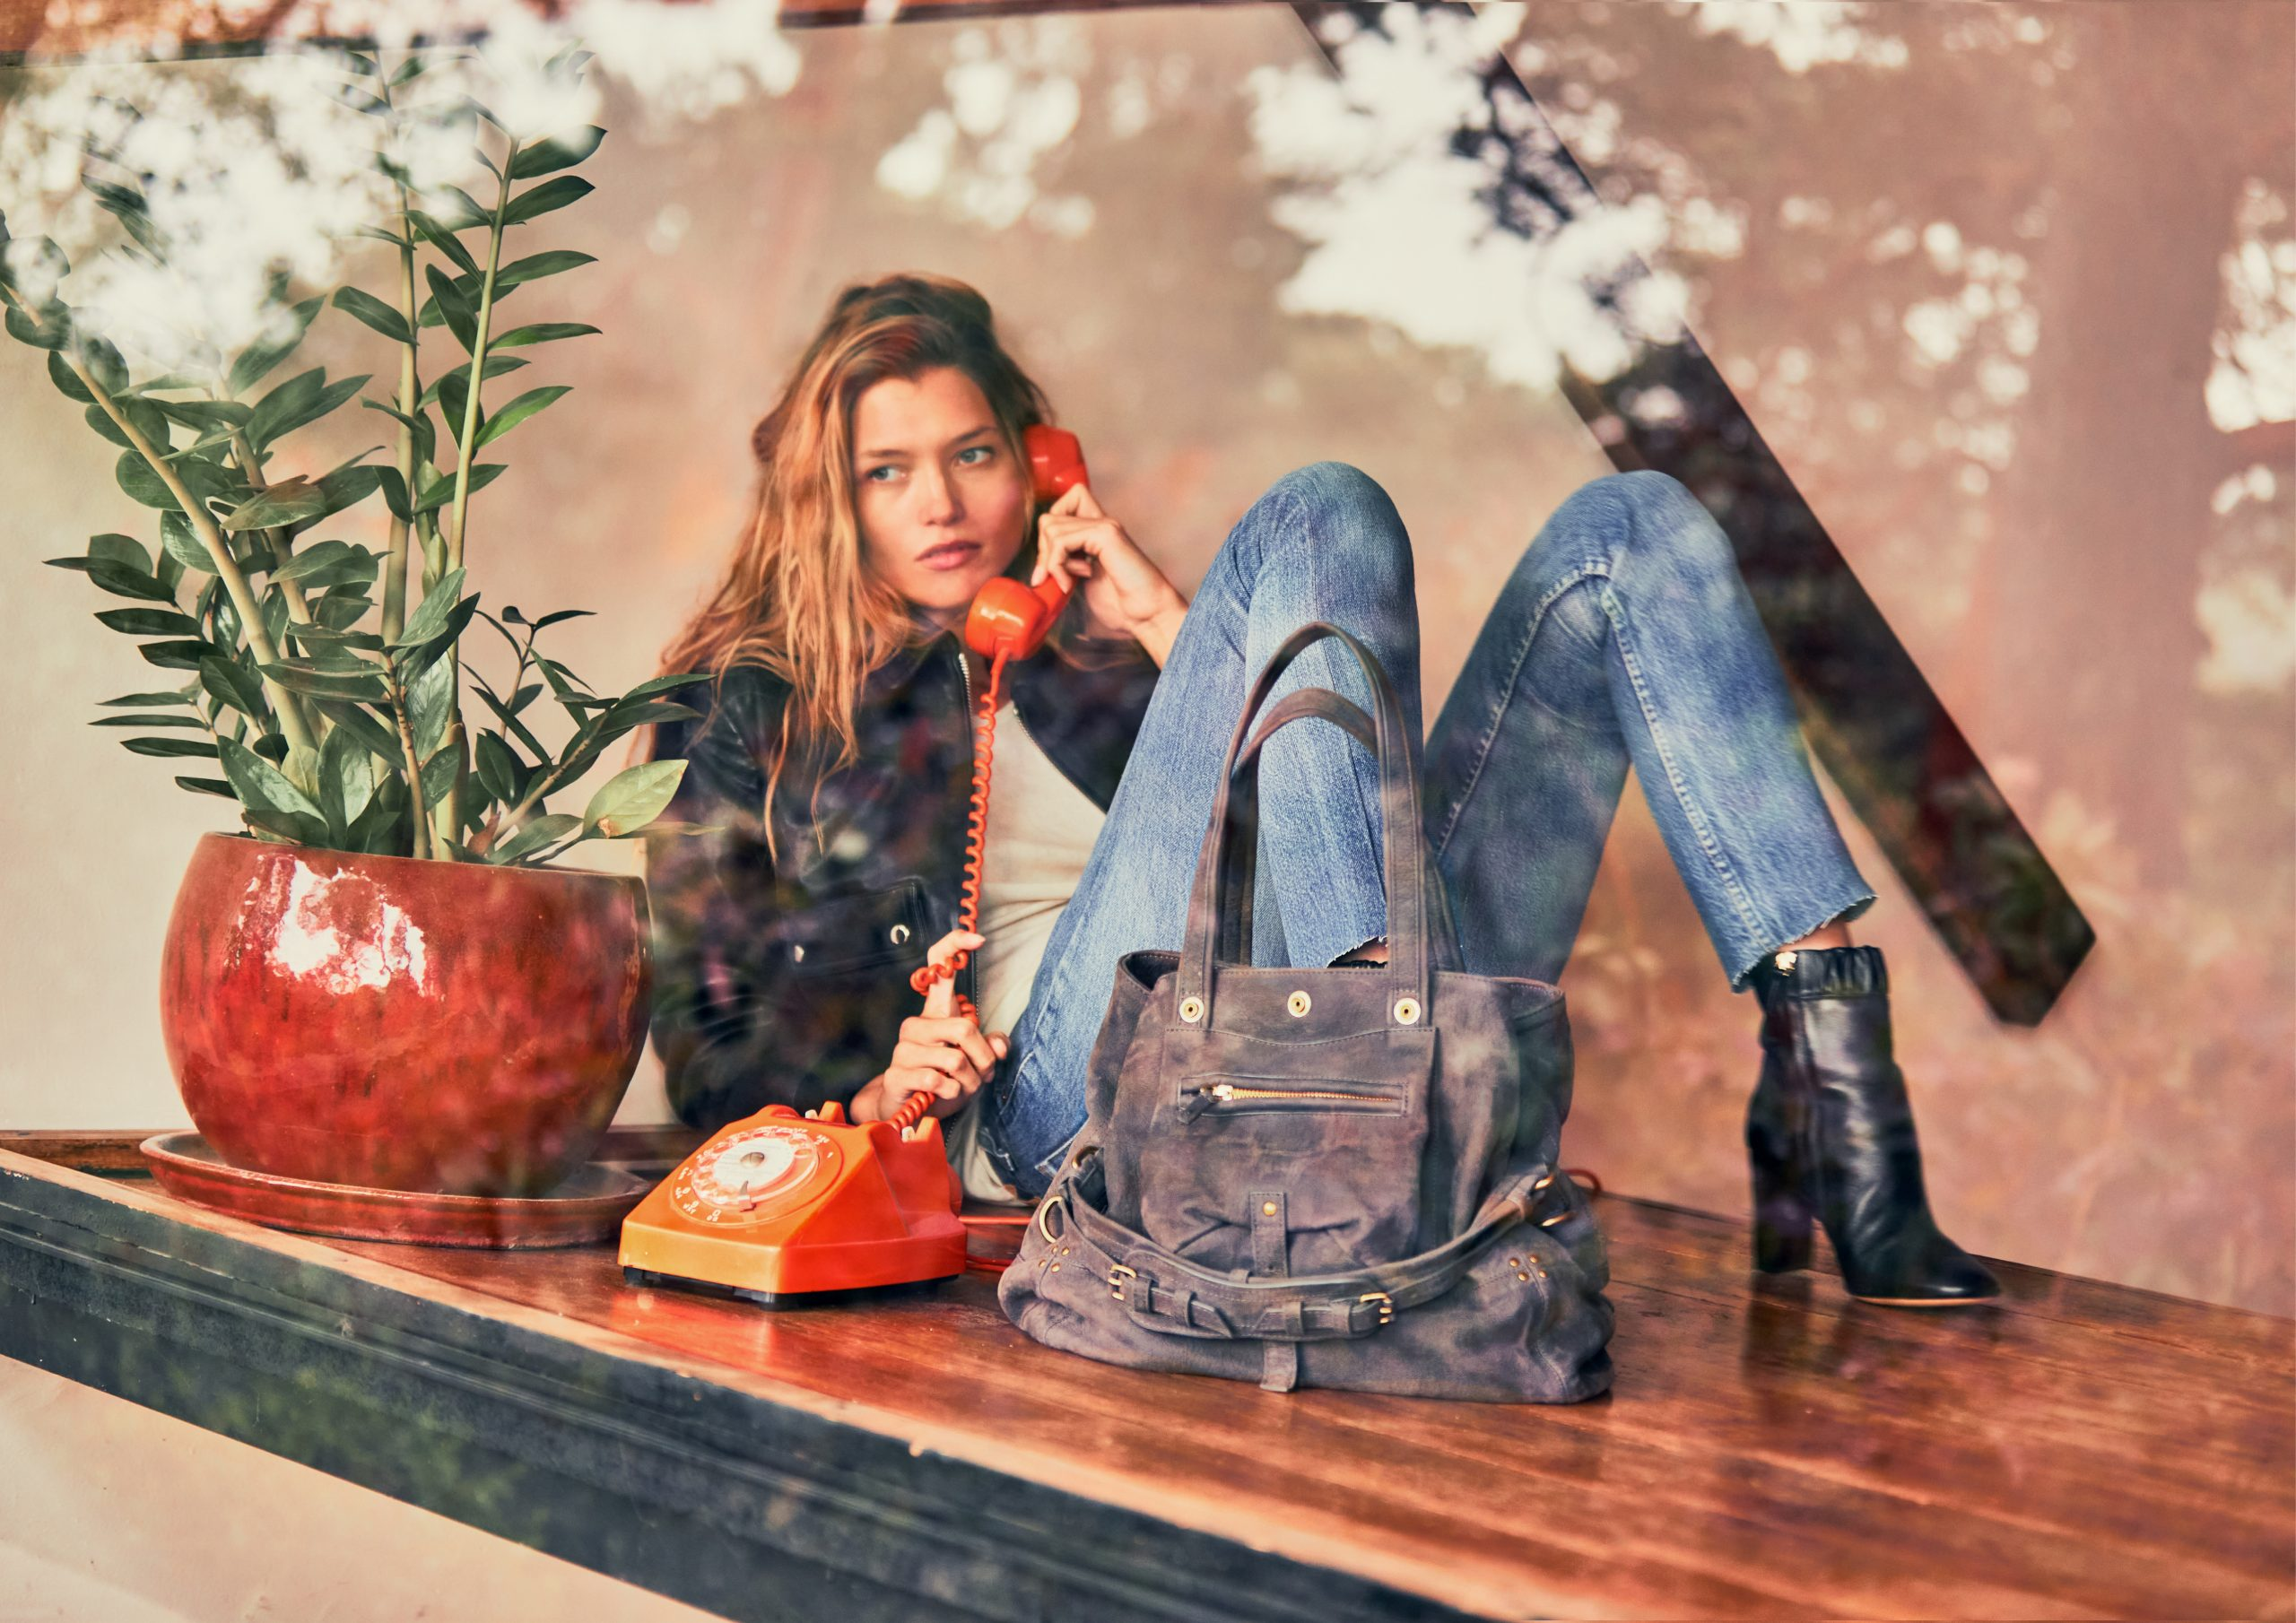 Jerome Dreyfuss Fall 2020 Ad Campaign Film & Photos